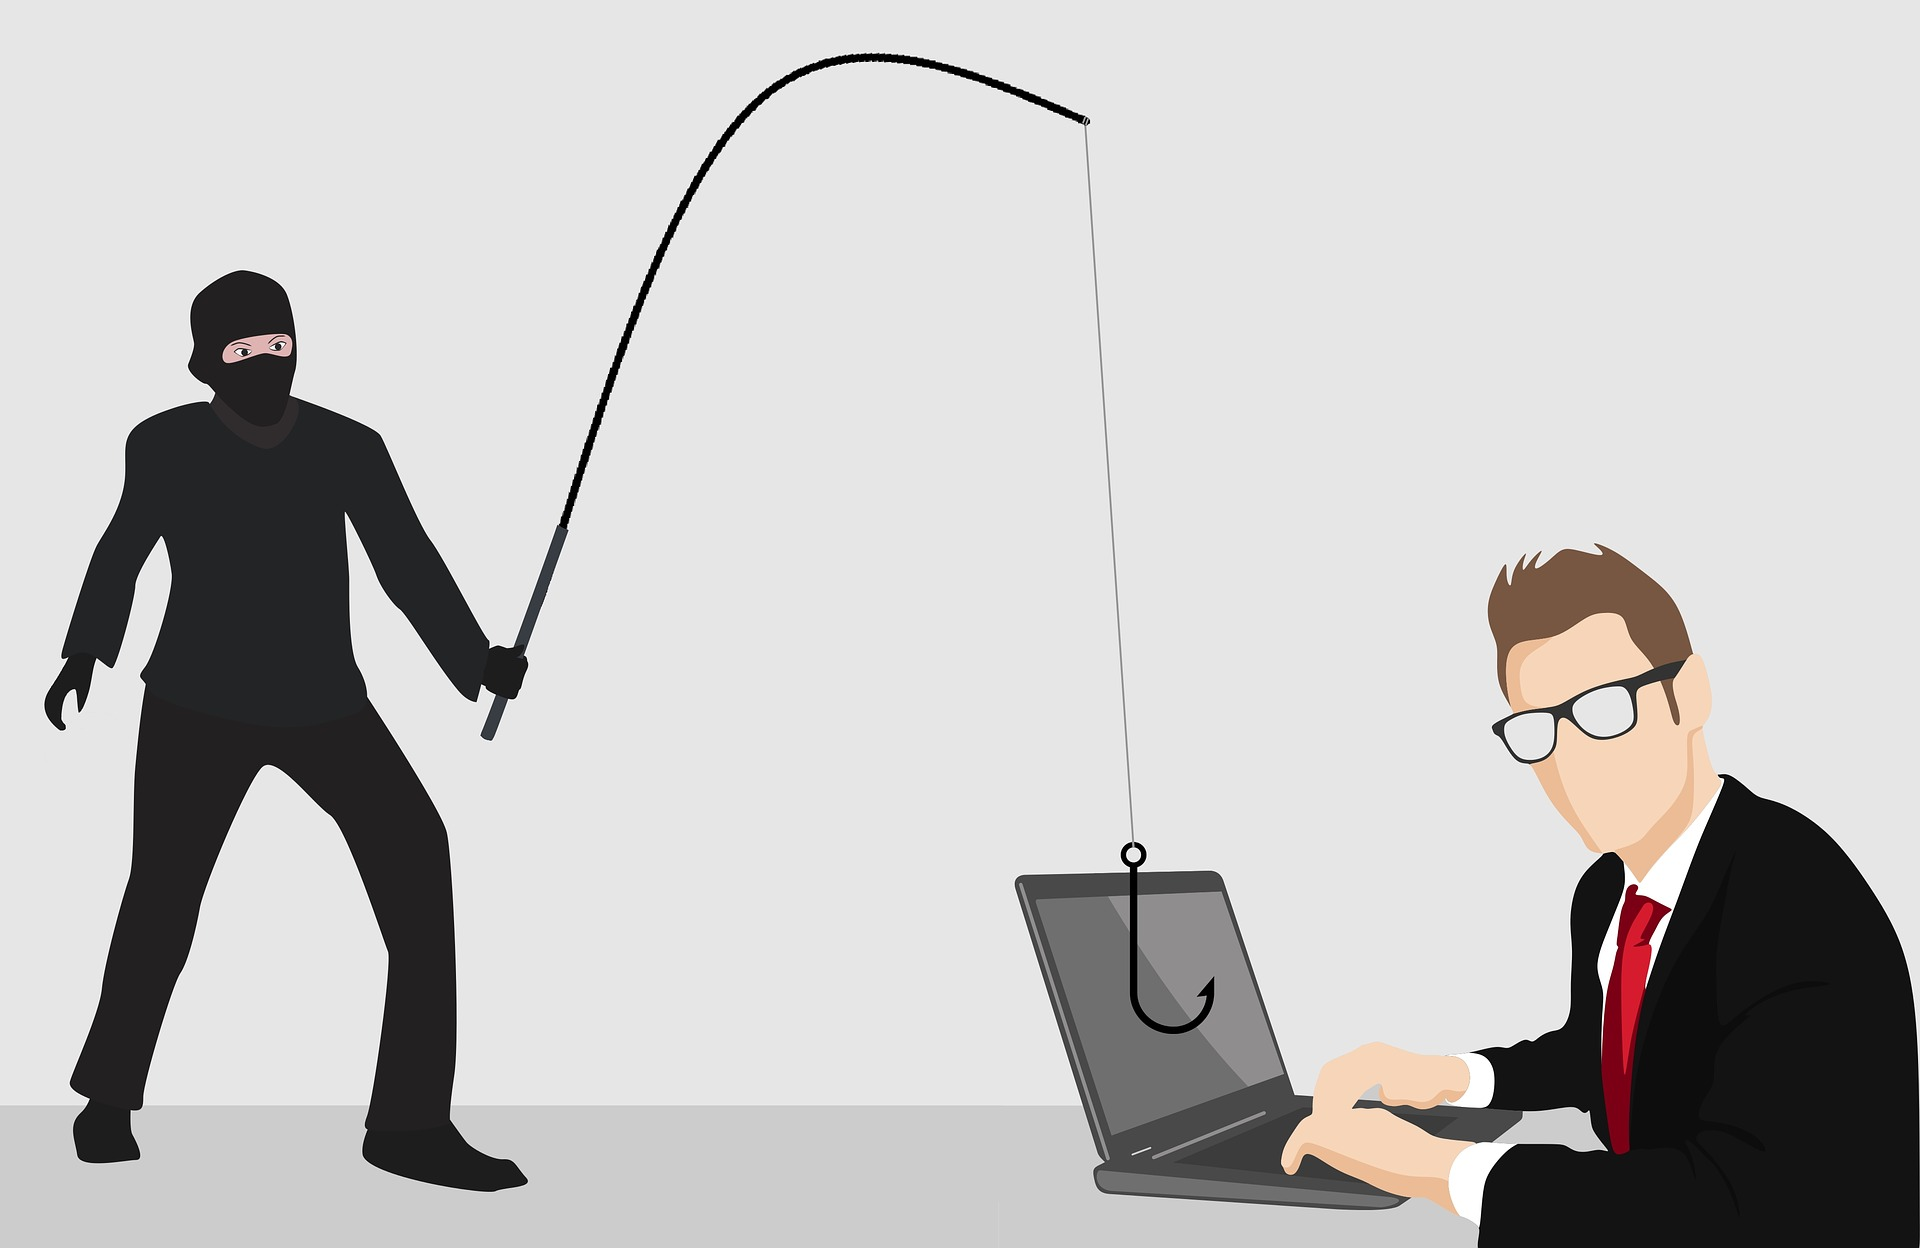 thief with fishing pole pointing at employee with computer